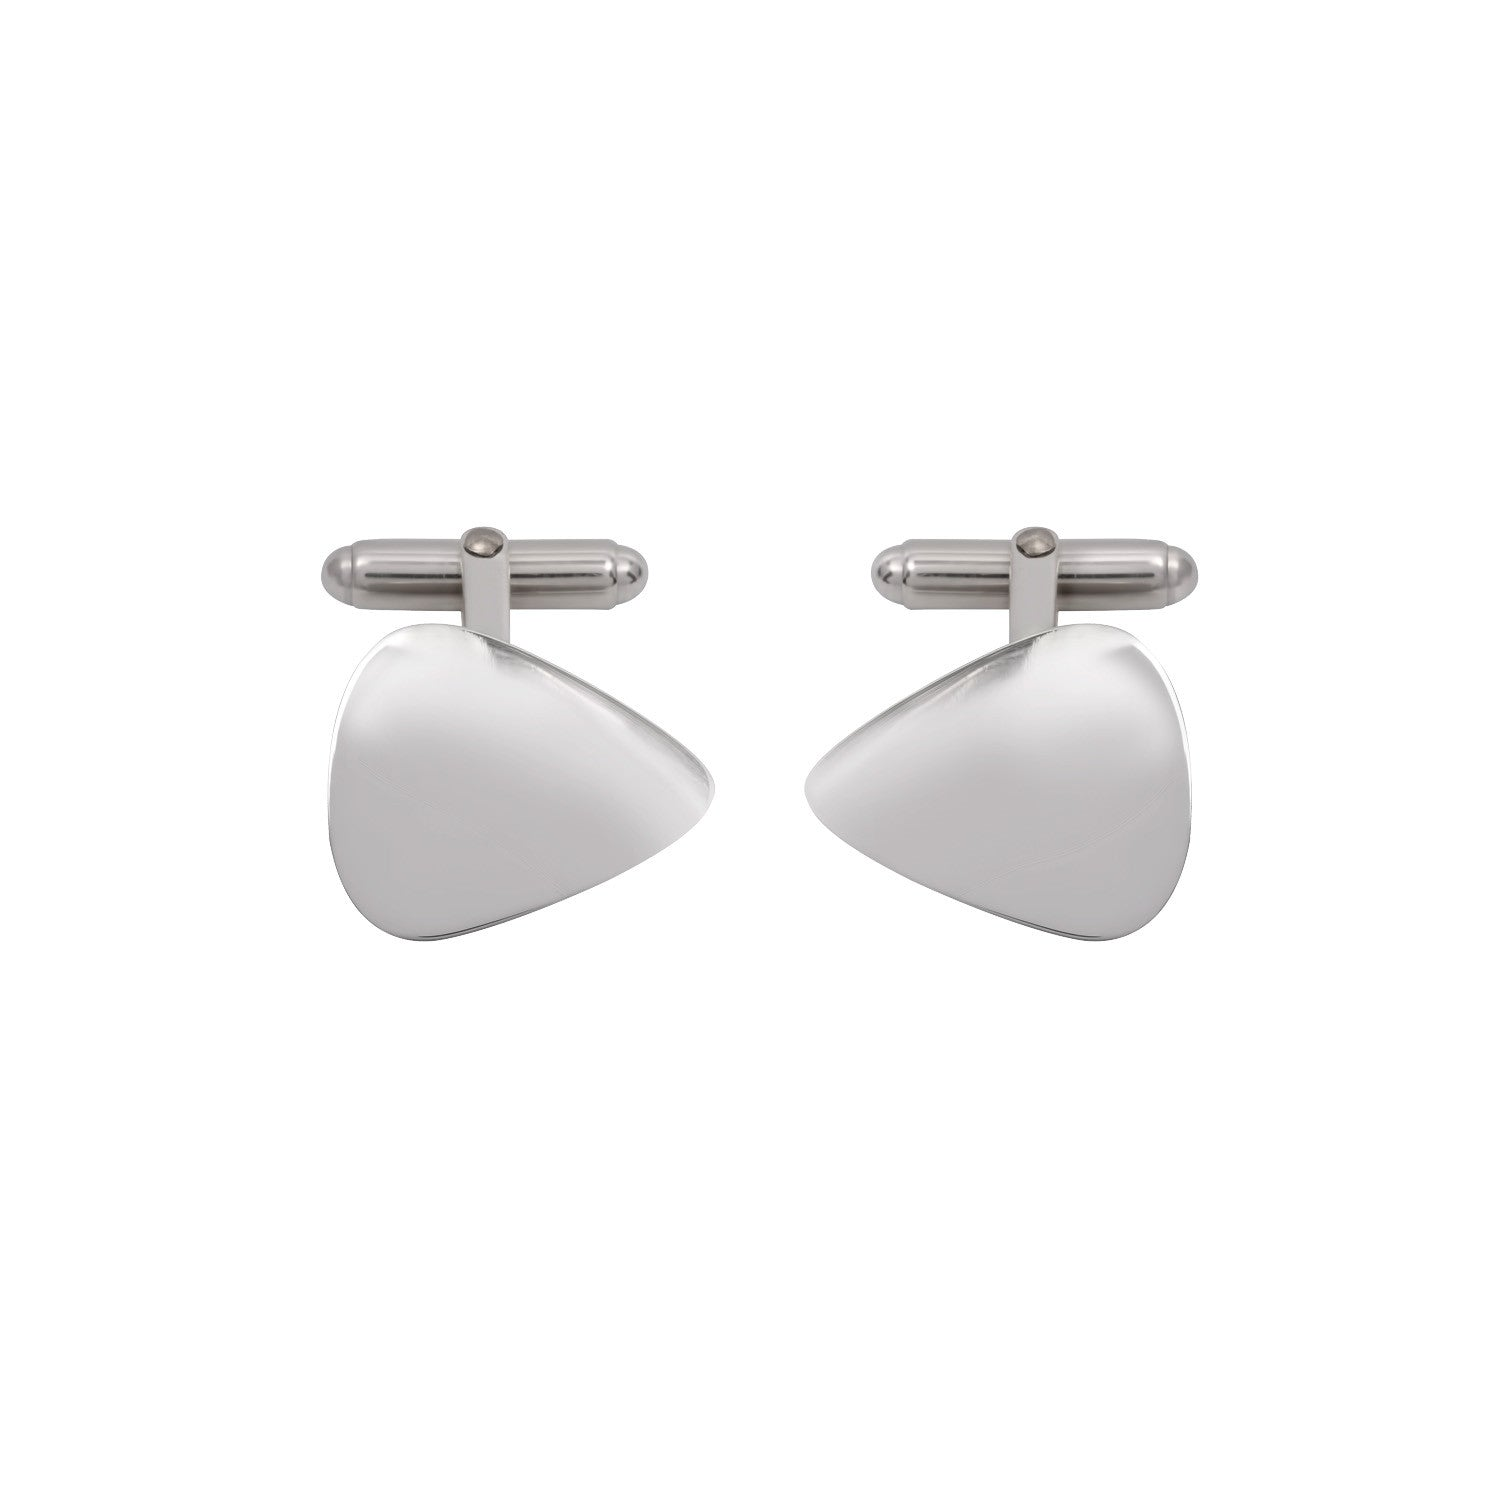 Plectrum Cufflinks in Sterling Silver